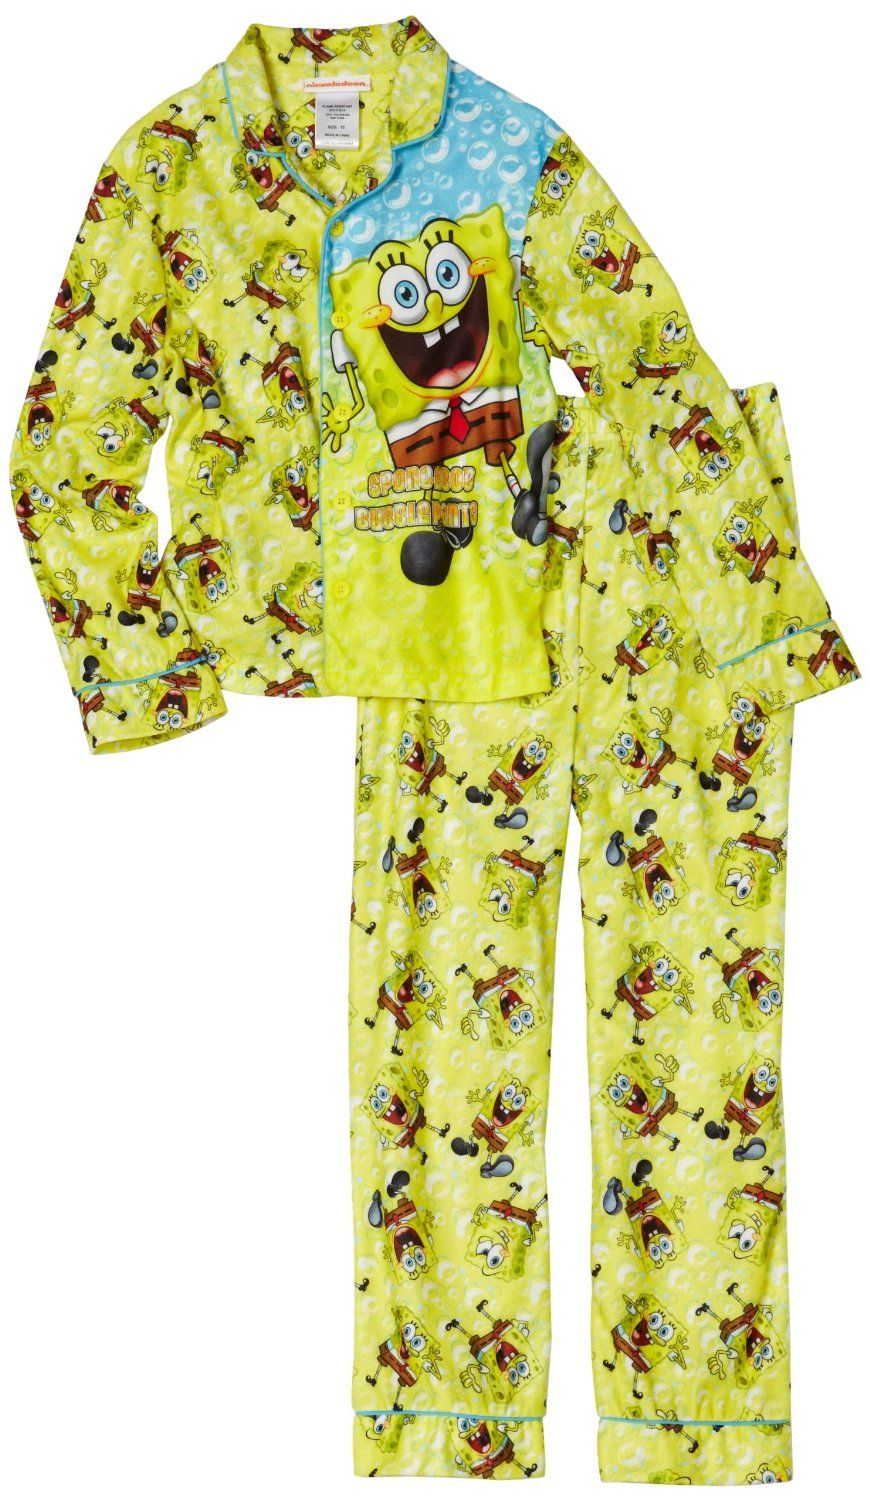 welcome to spongebob pajamas collections here you will find a wide